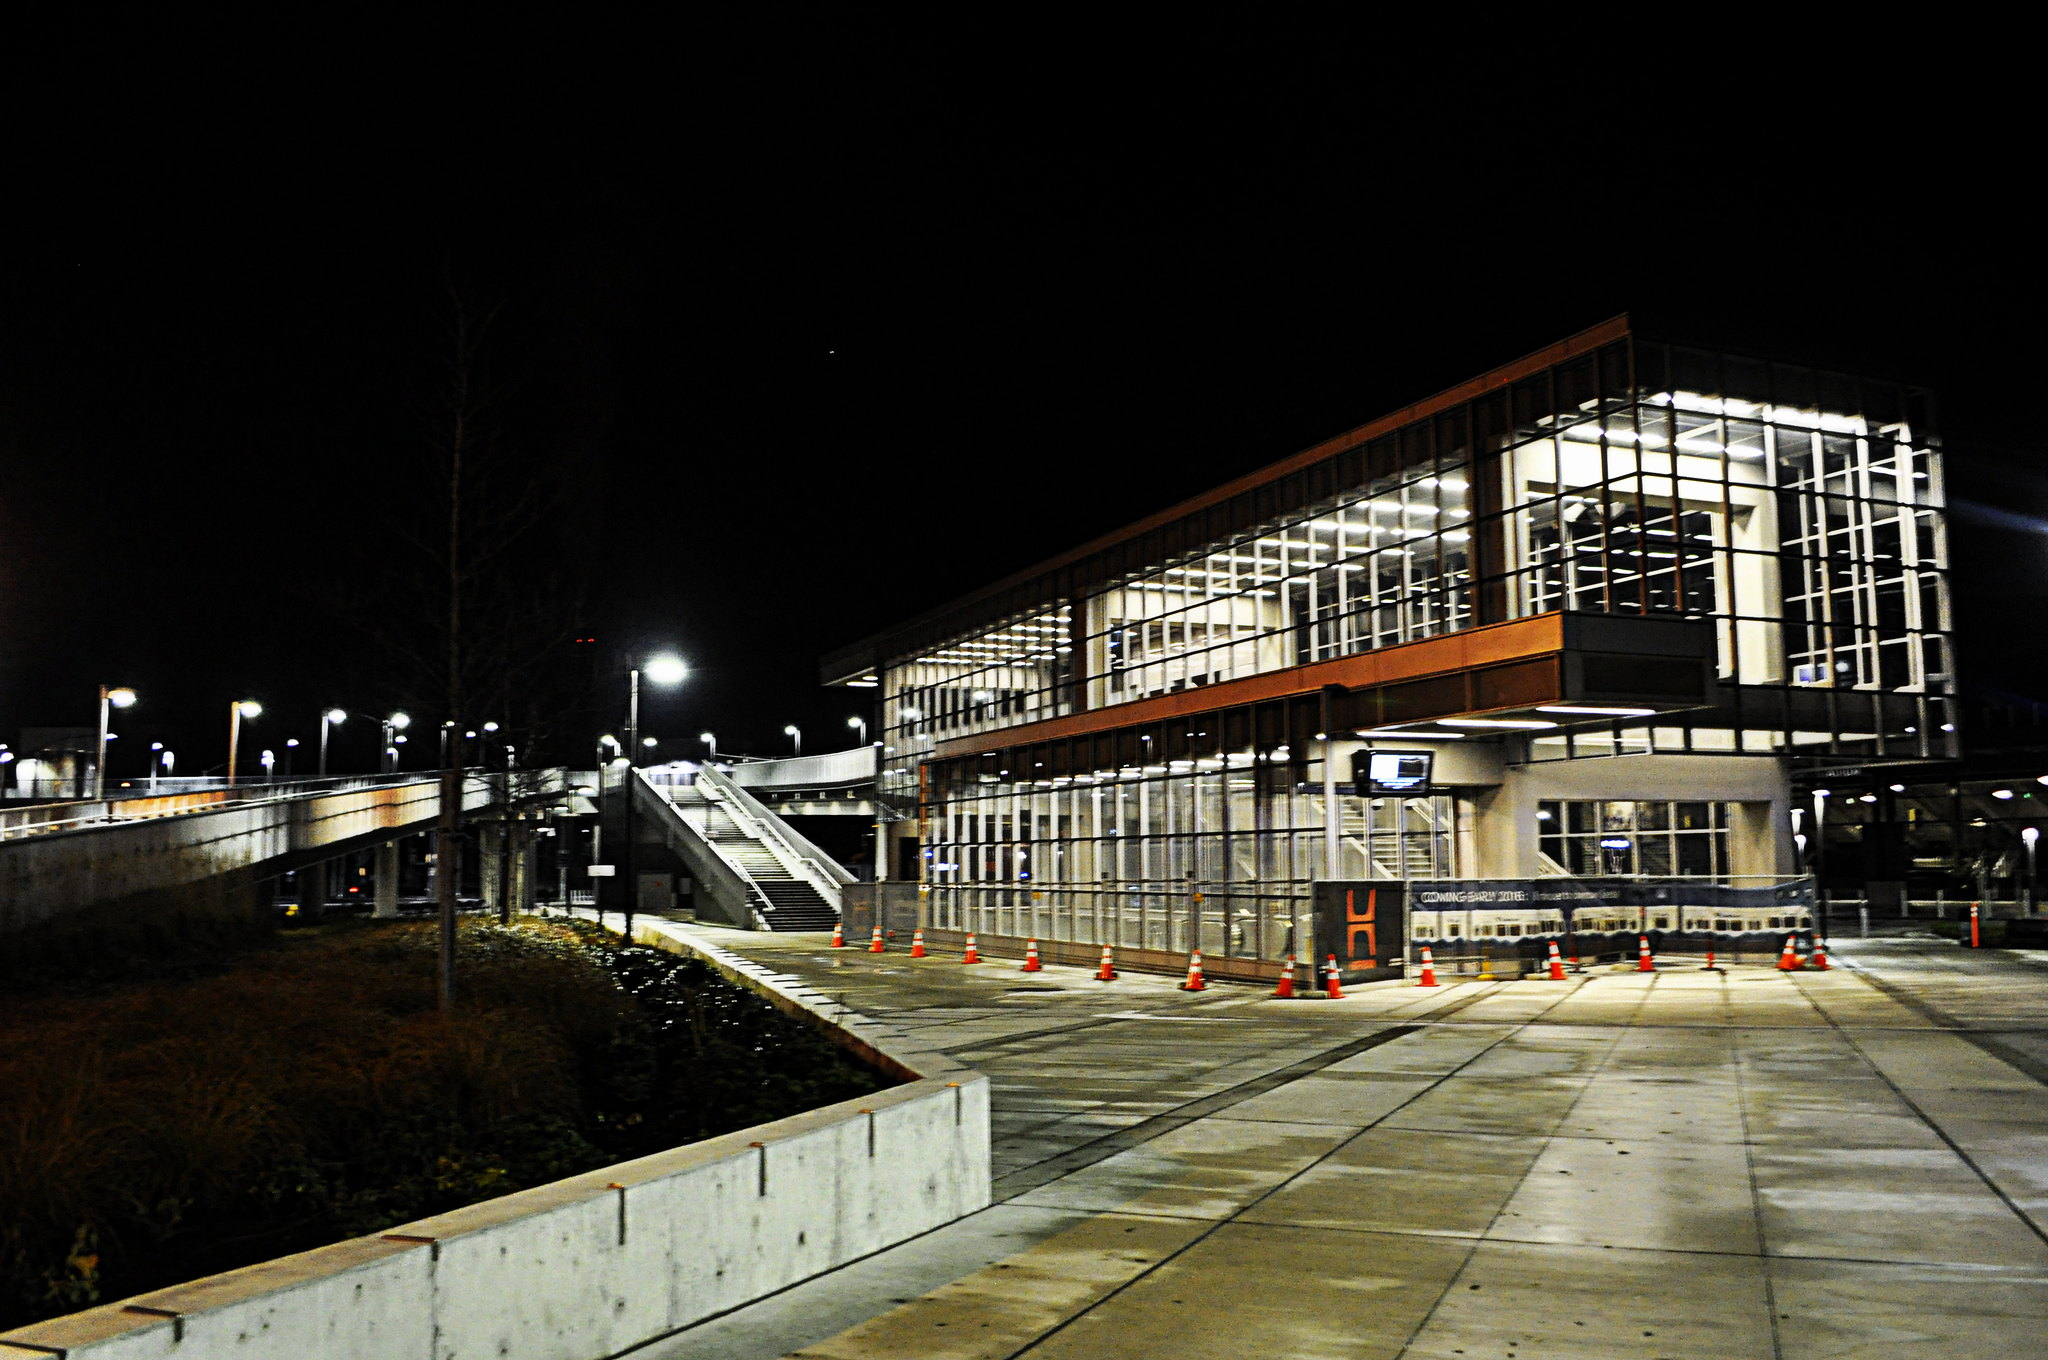 UW Station at night